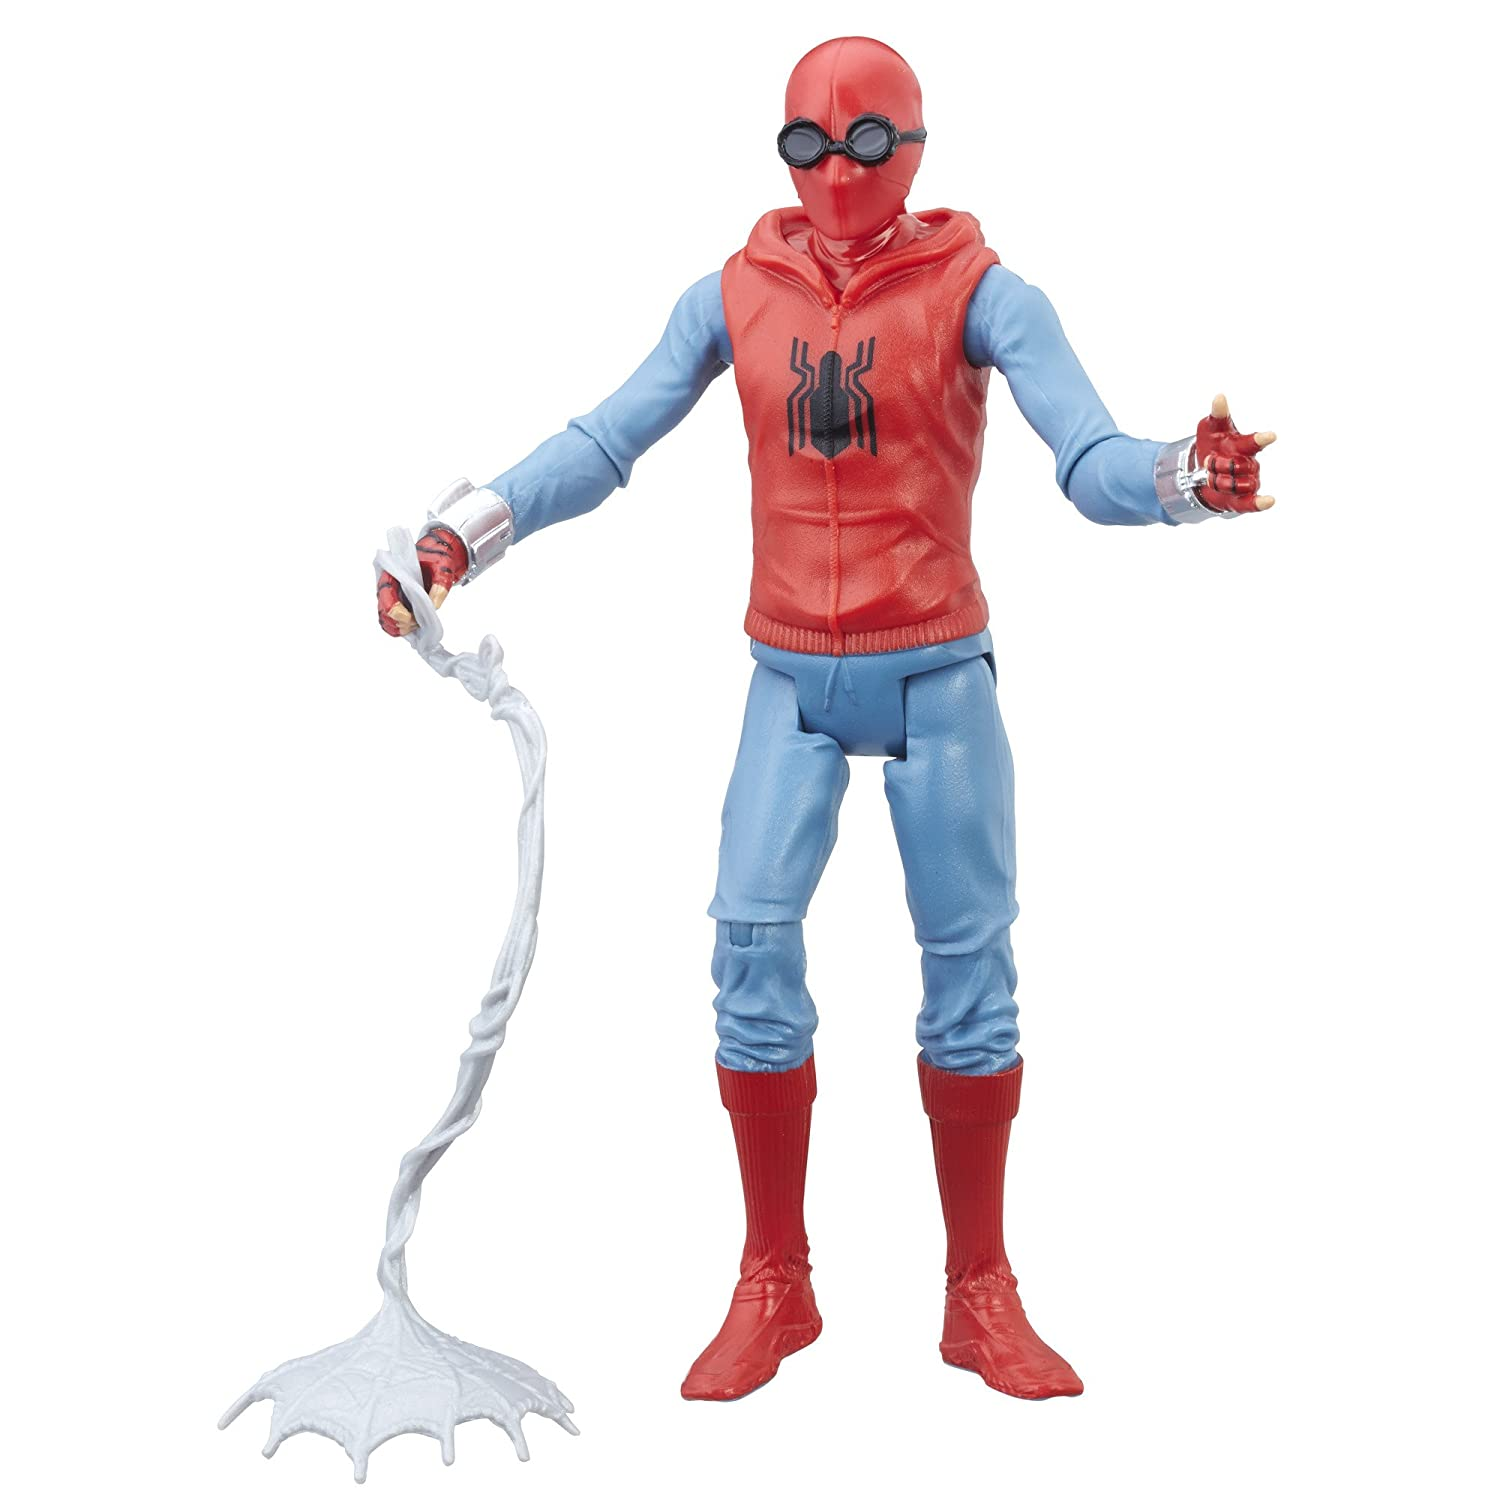 Spider-Man: Homecoming Homemade Suit Figure, 6-inch